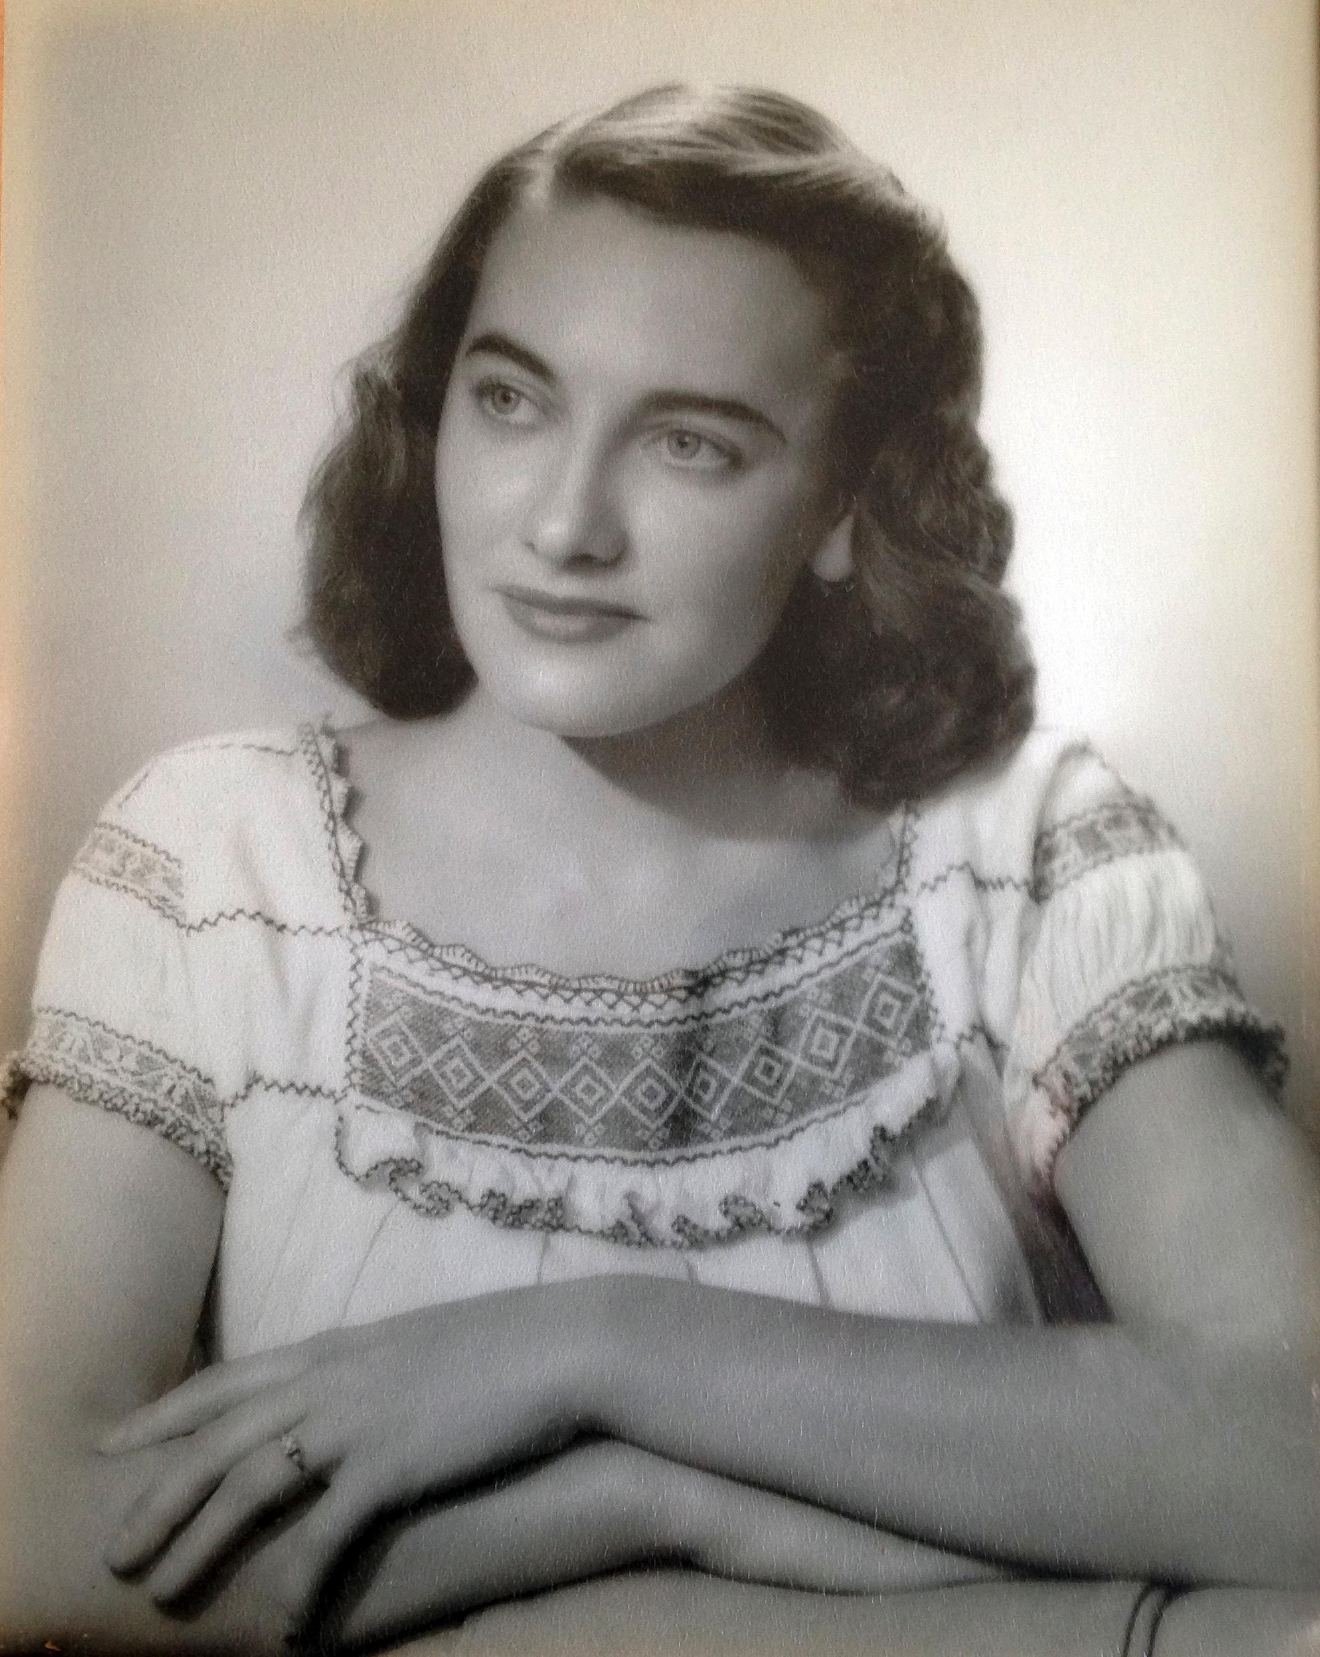 This undated photo provided by the Haley family shows Jean Haley, of Barrington, R.I., when she was about 25 years old. Jean and her twin 97-year-old sister Martha Williams froze to death Saturday, March 4, 2017, after they fell outside Jean's home in Barrington and were stranded there during one of the coldest nights of the winter. A neighbor found the twin sisters the next morning. (Haley family via AP)